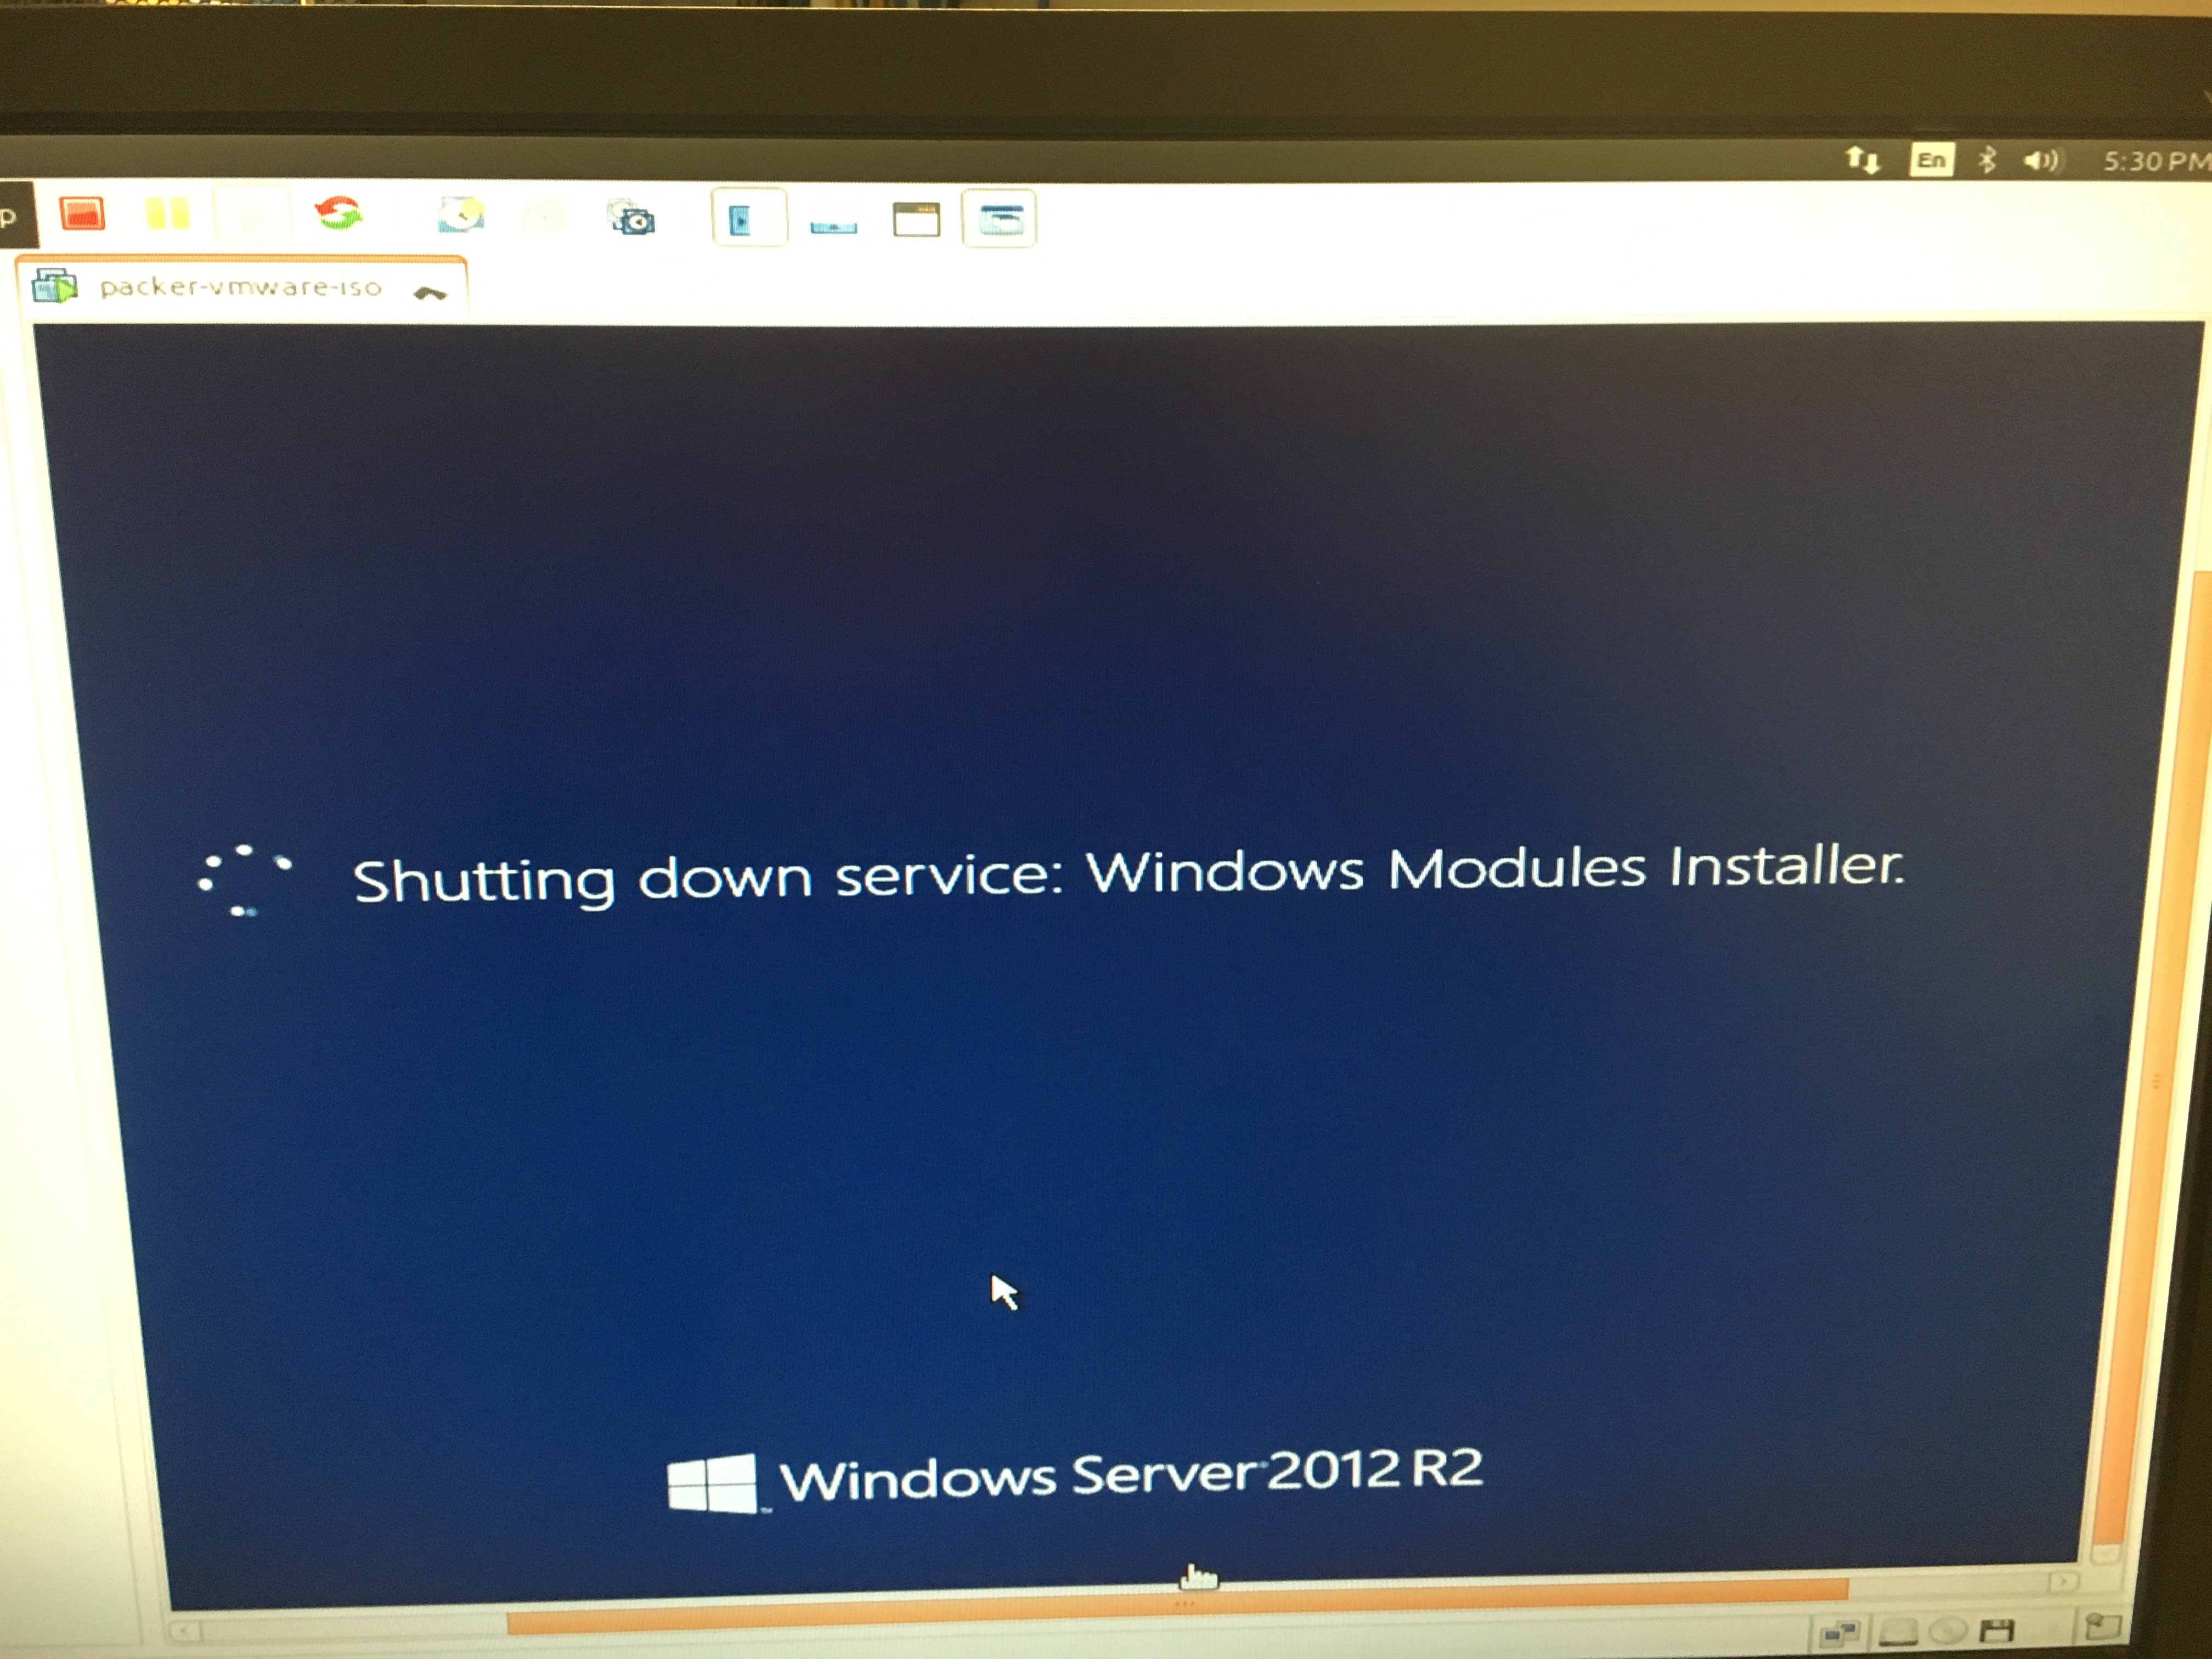 Windows builds on VMWare Workstation failing on 1 1 2